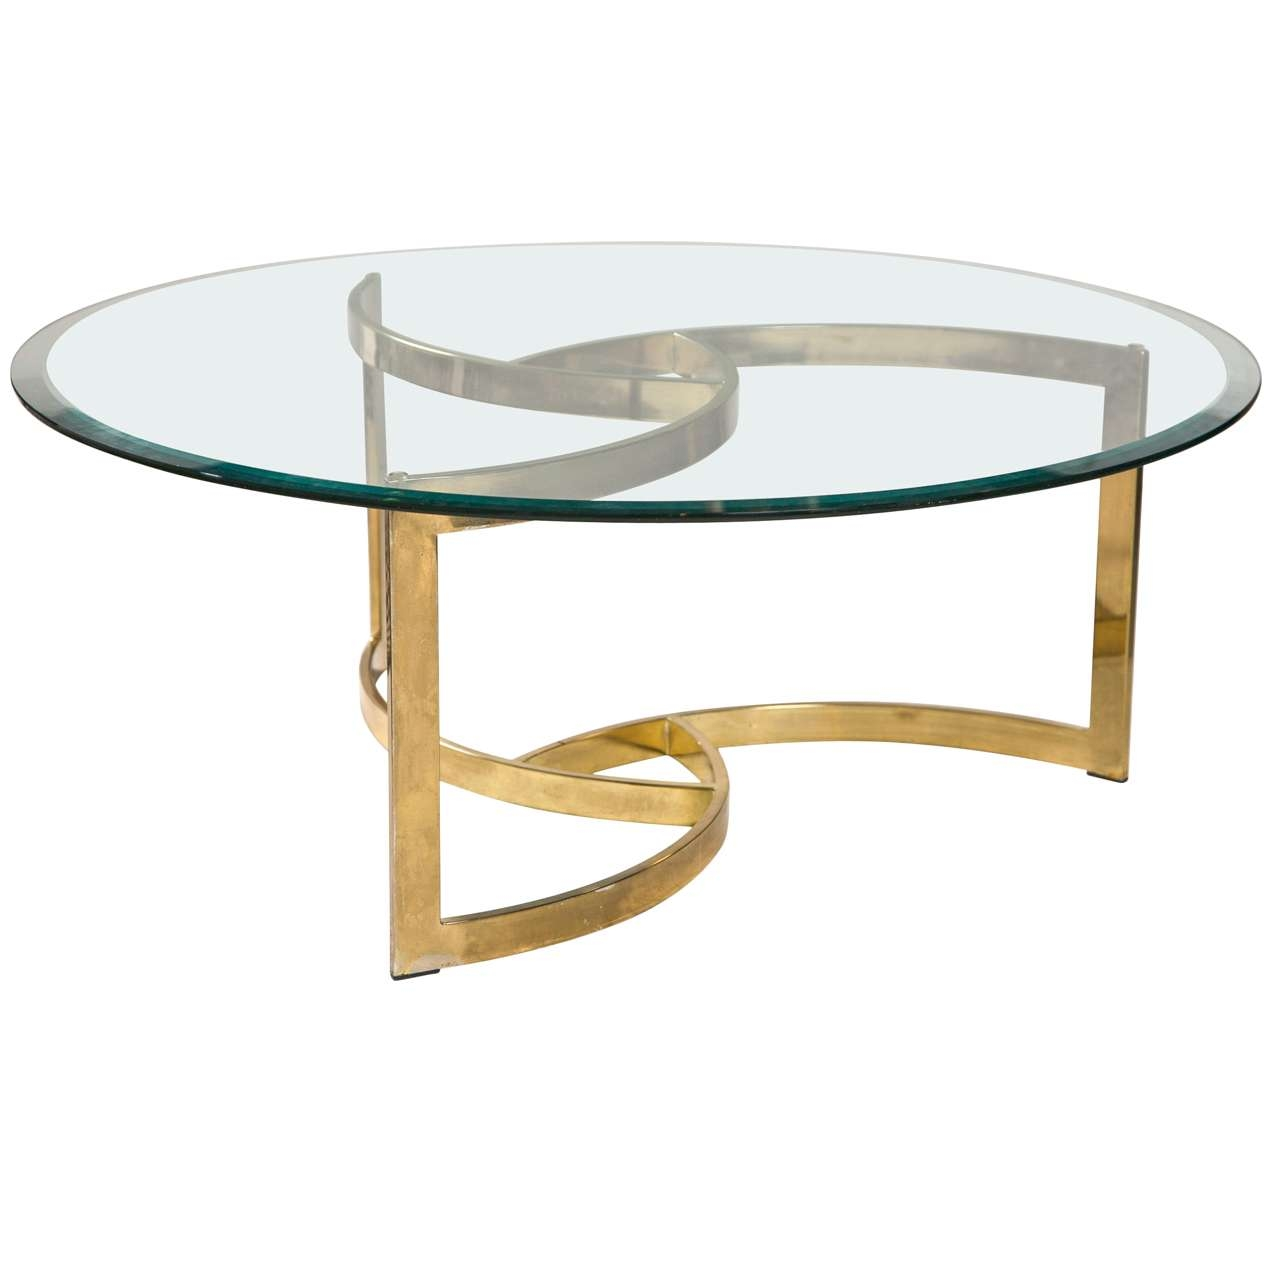 Hinreißend Modern Round Coffee Table Trend For With Storage Inside Well Known Round Glass Coffee Tables (Gallery 7 of 20)